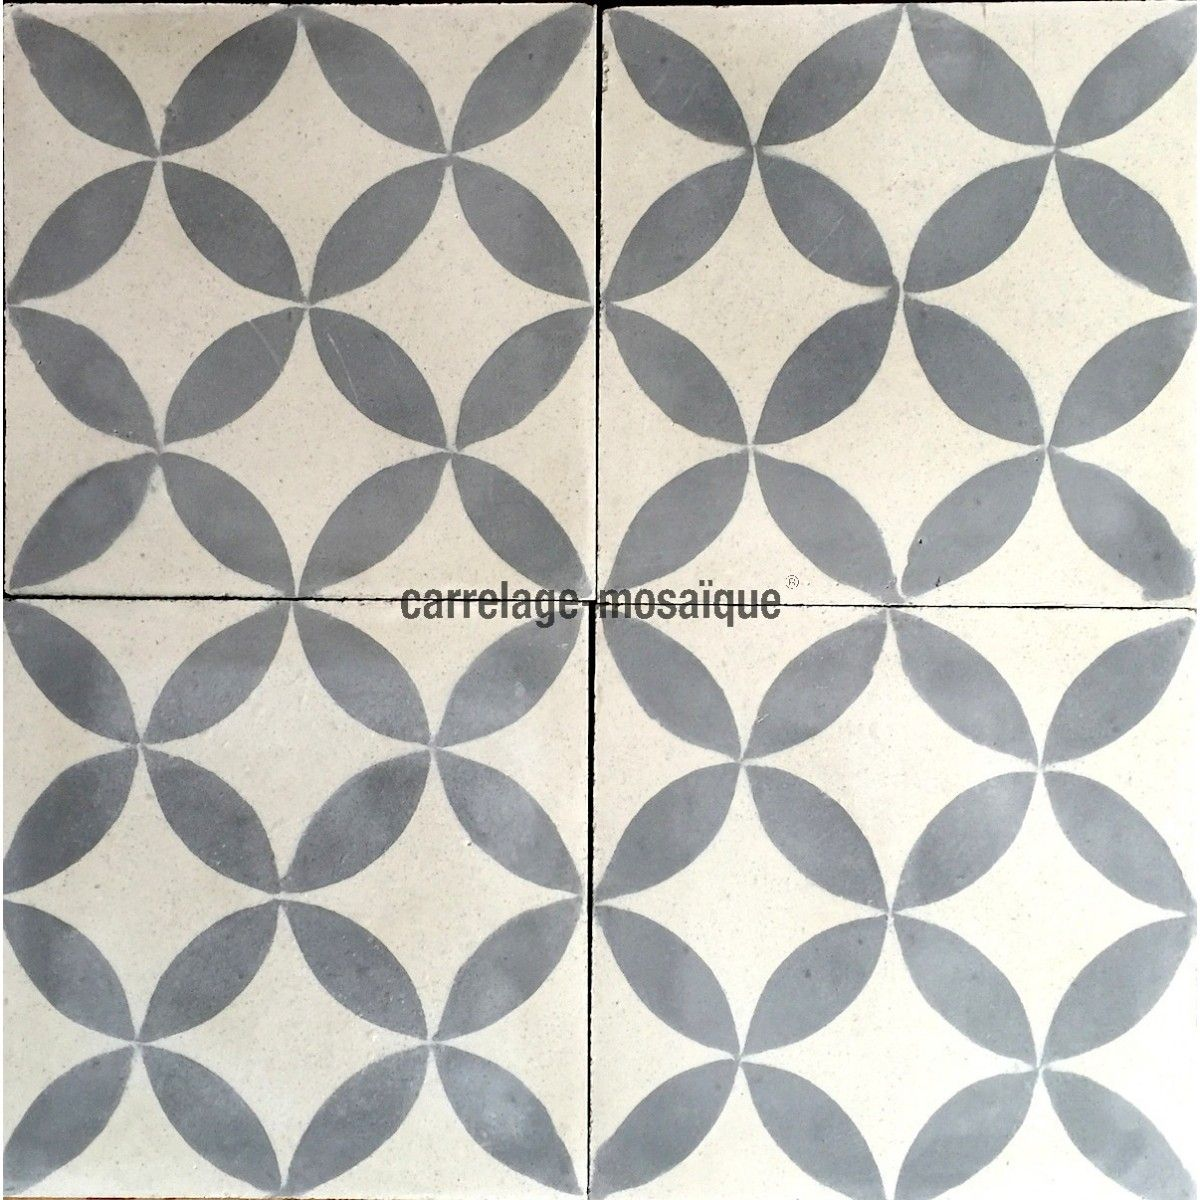 Carrelage ciment pas cher 1m2 modele sampa gris for Carrelage damier